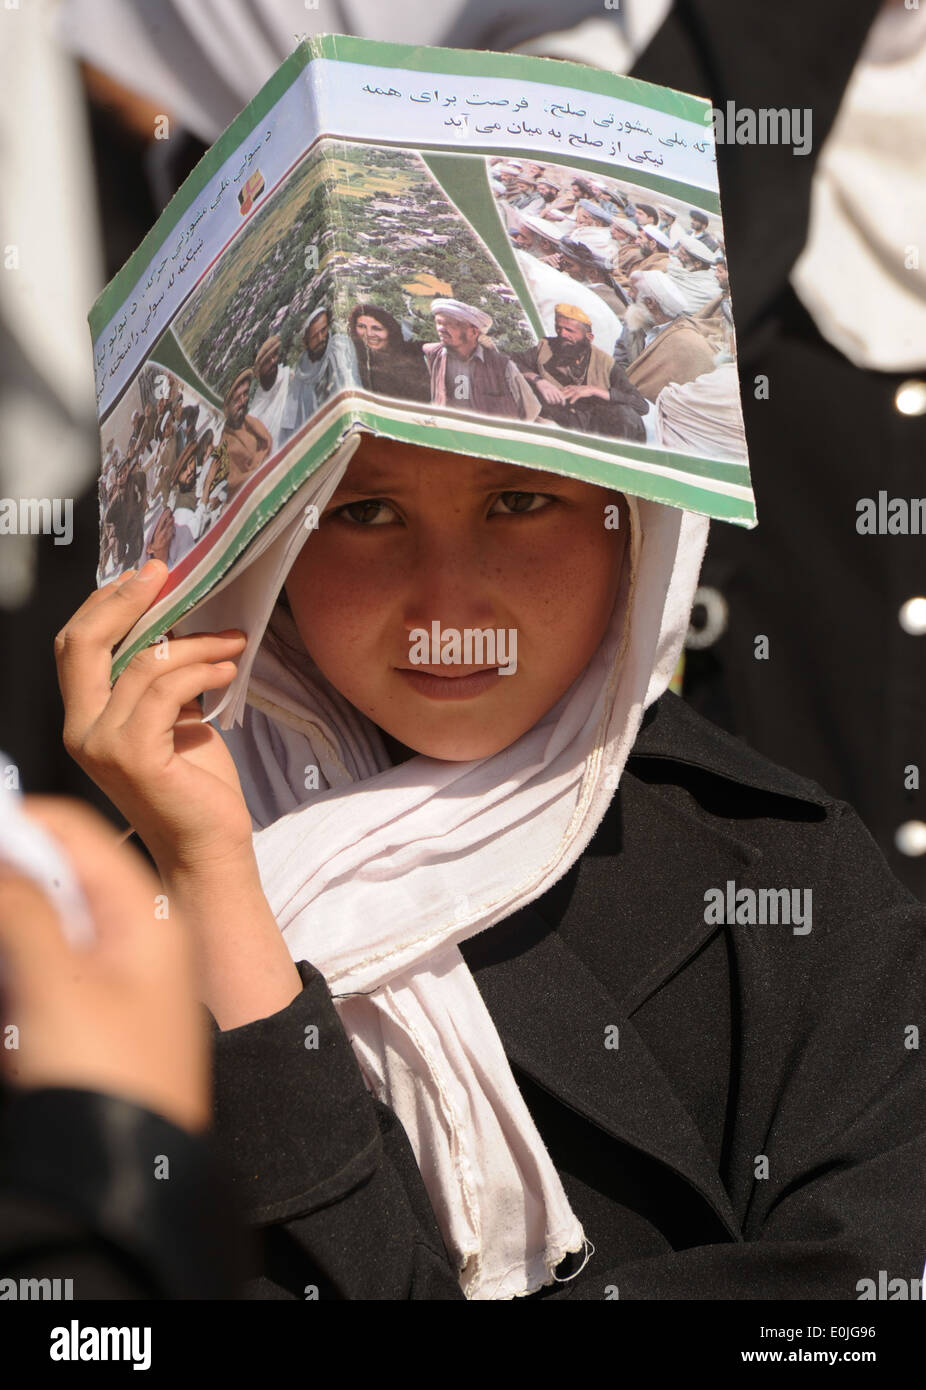 An Afghan girl uses a school book to shade her eyes from the sun as she waits for a ground breaking ceremony to begin at the Al - Stock Image